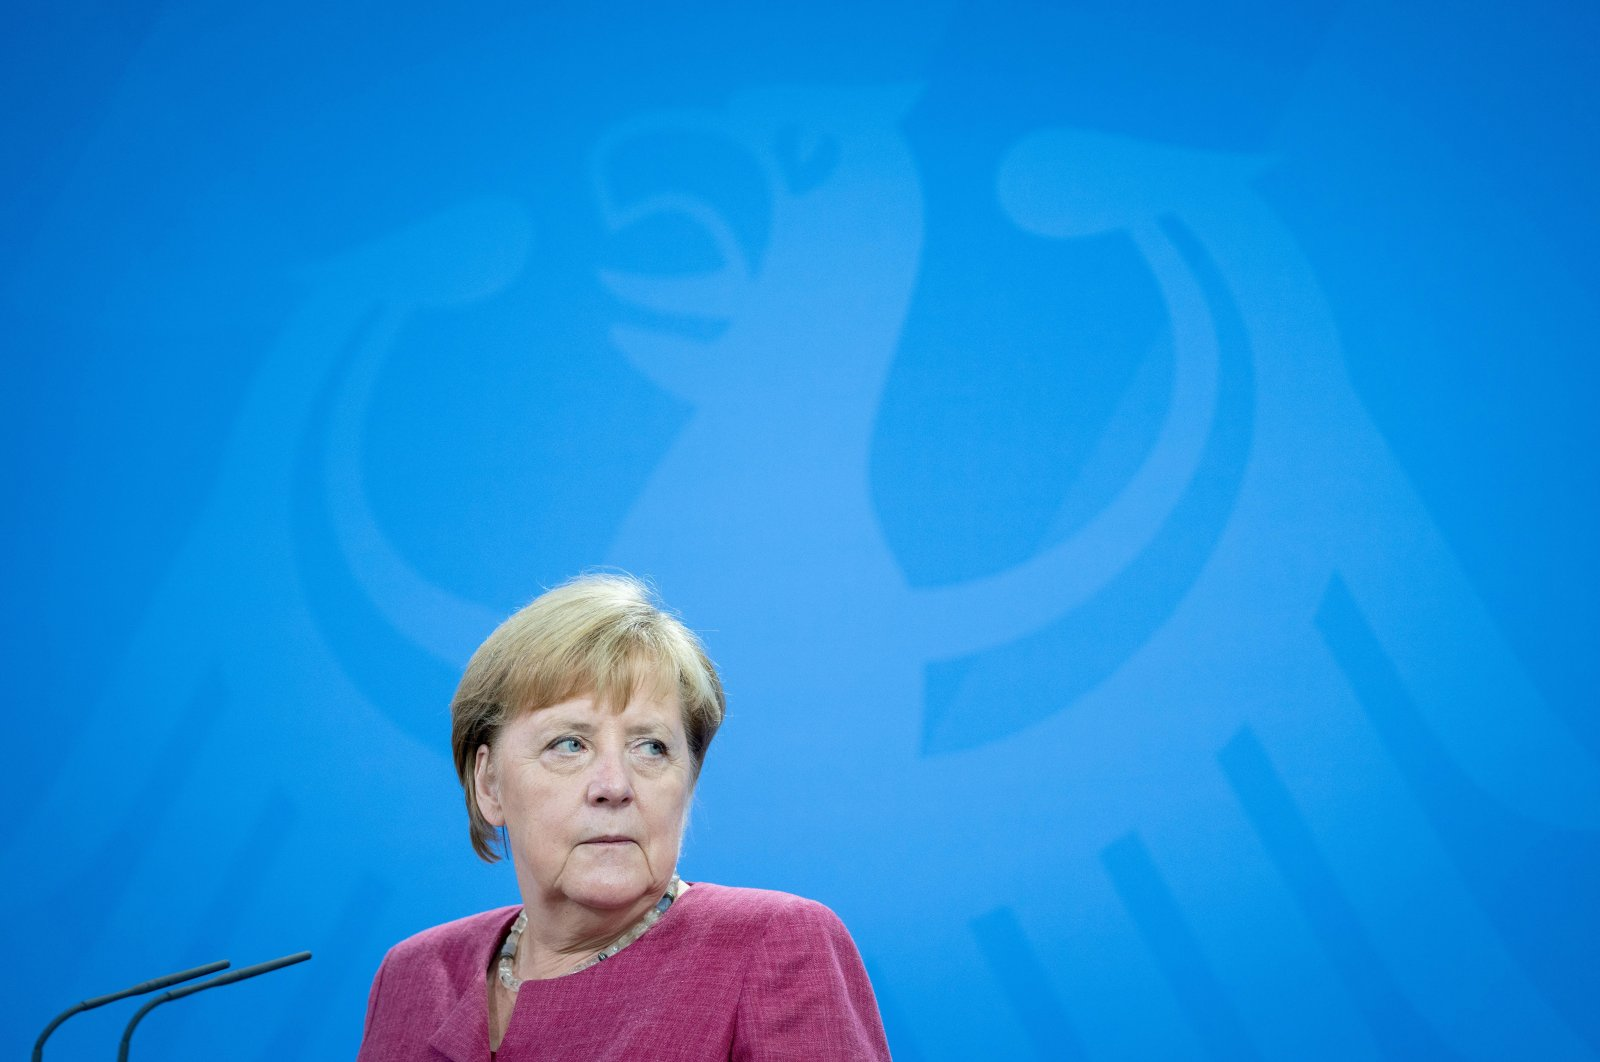 German Chancellor Angela Merkel and Estonia's Prime Minister Kaja Kallas address a news conference at the Chancellery in Berlin, Germany, Aug. 17, 2021. (Reuters Photo)